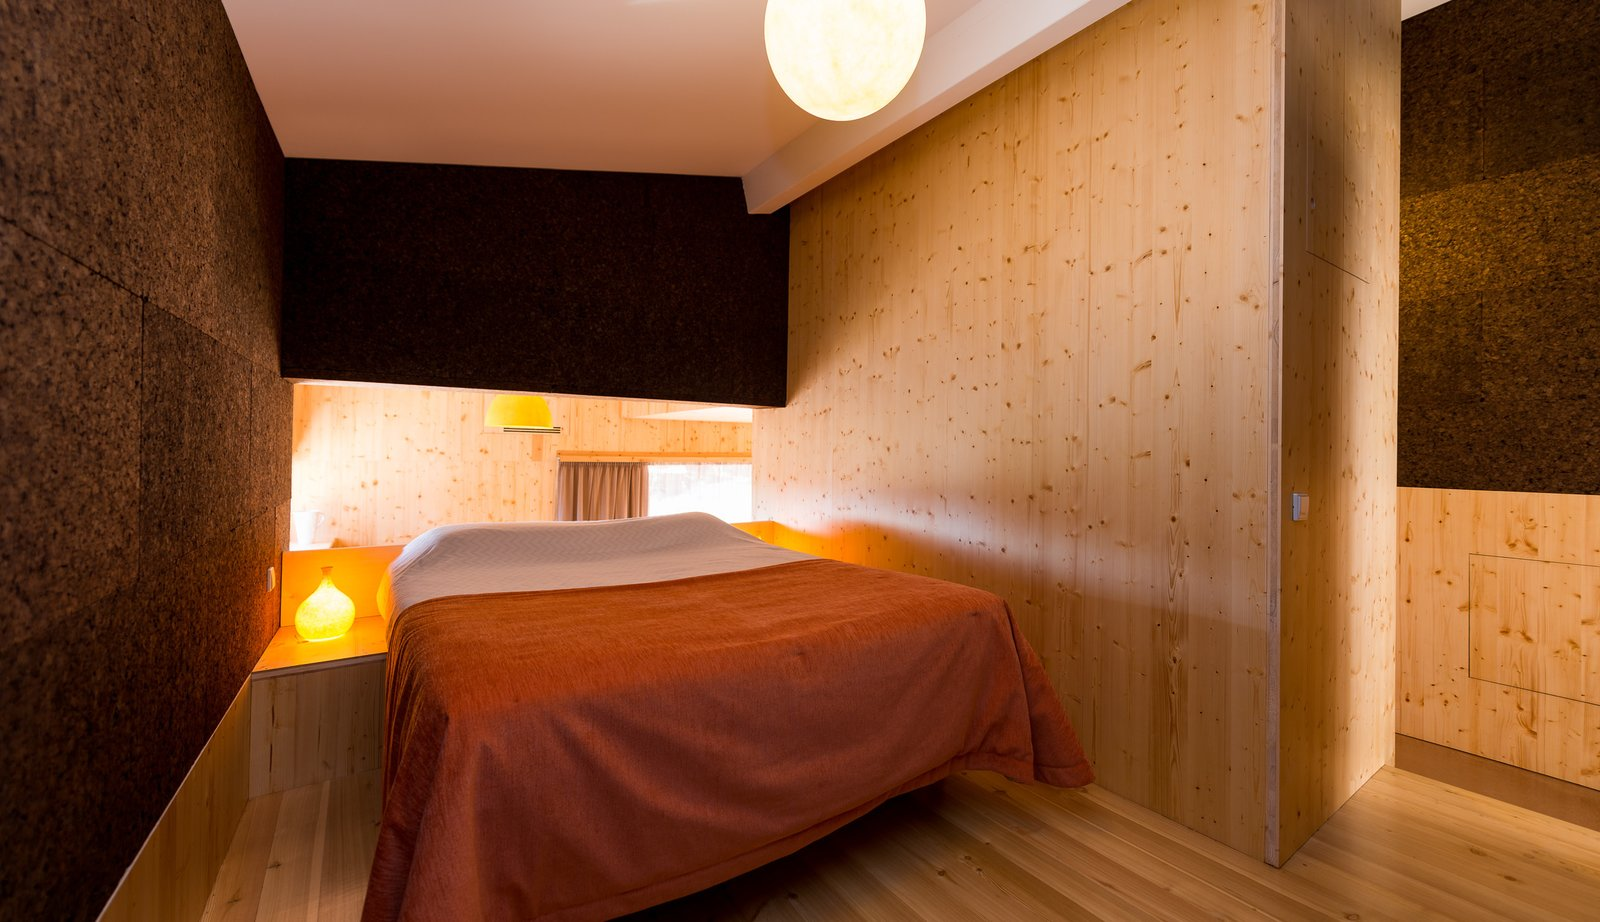 Bedroom, Bed, Night Stands, Ceiling Lighting, Table Lighting, Accent Lighting, Light Hardwood Floor, and Lamps  Photo 8 of 16 in Stay in a Tiny, Eco-Friendly House in a Portuguese Schist Village